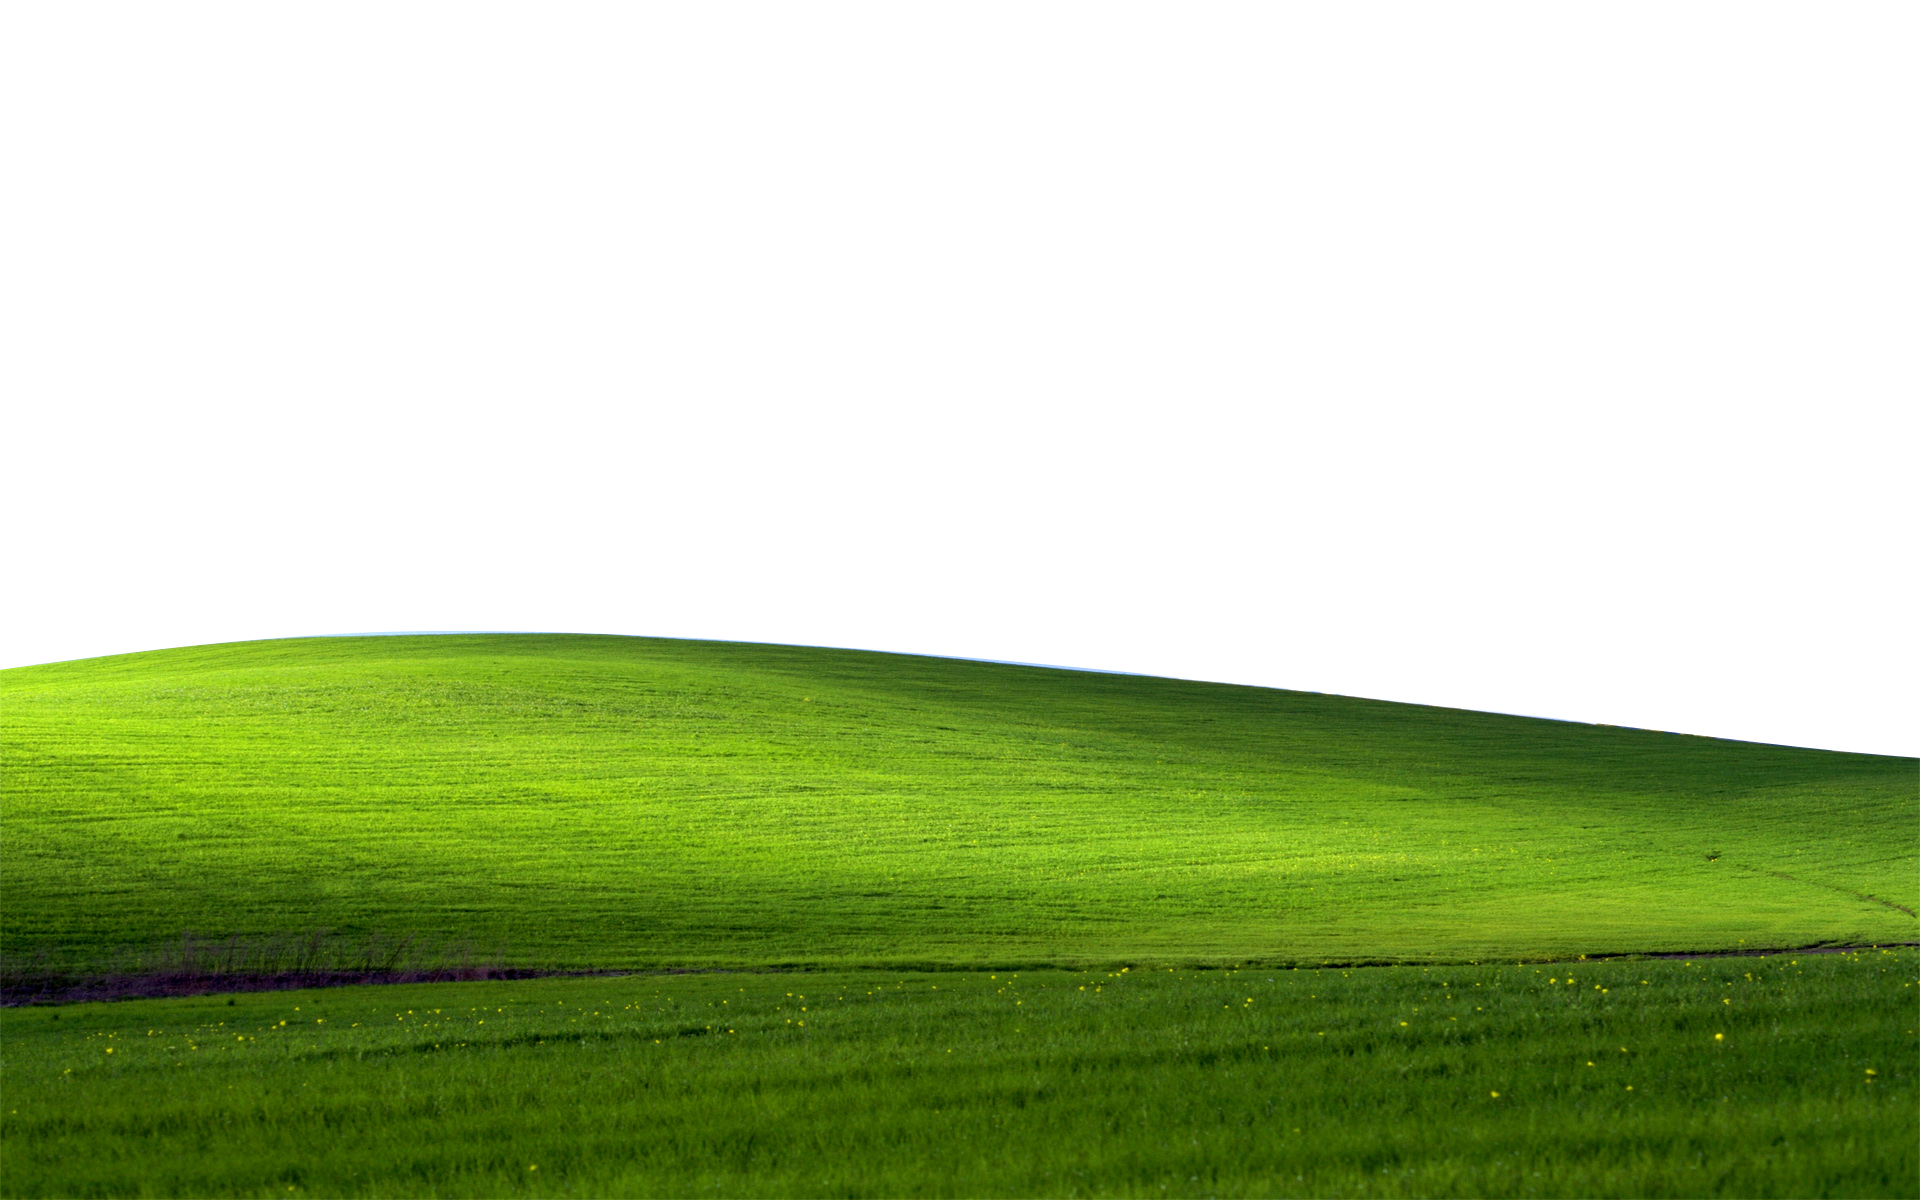 Hill Background PNG - 144200